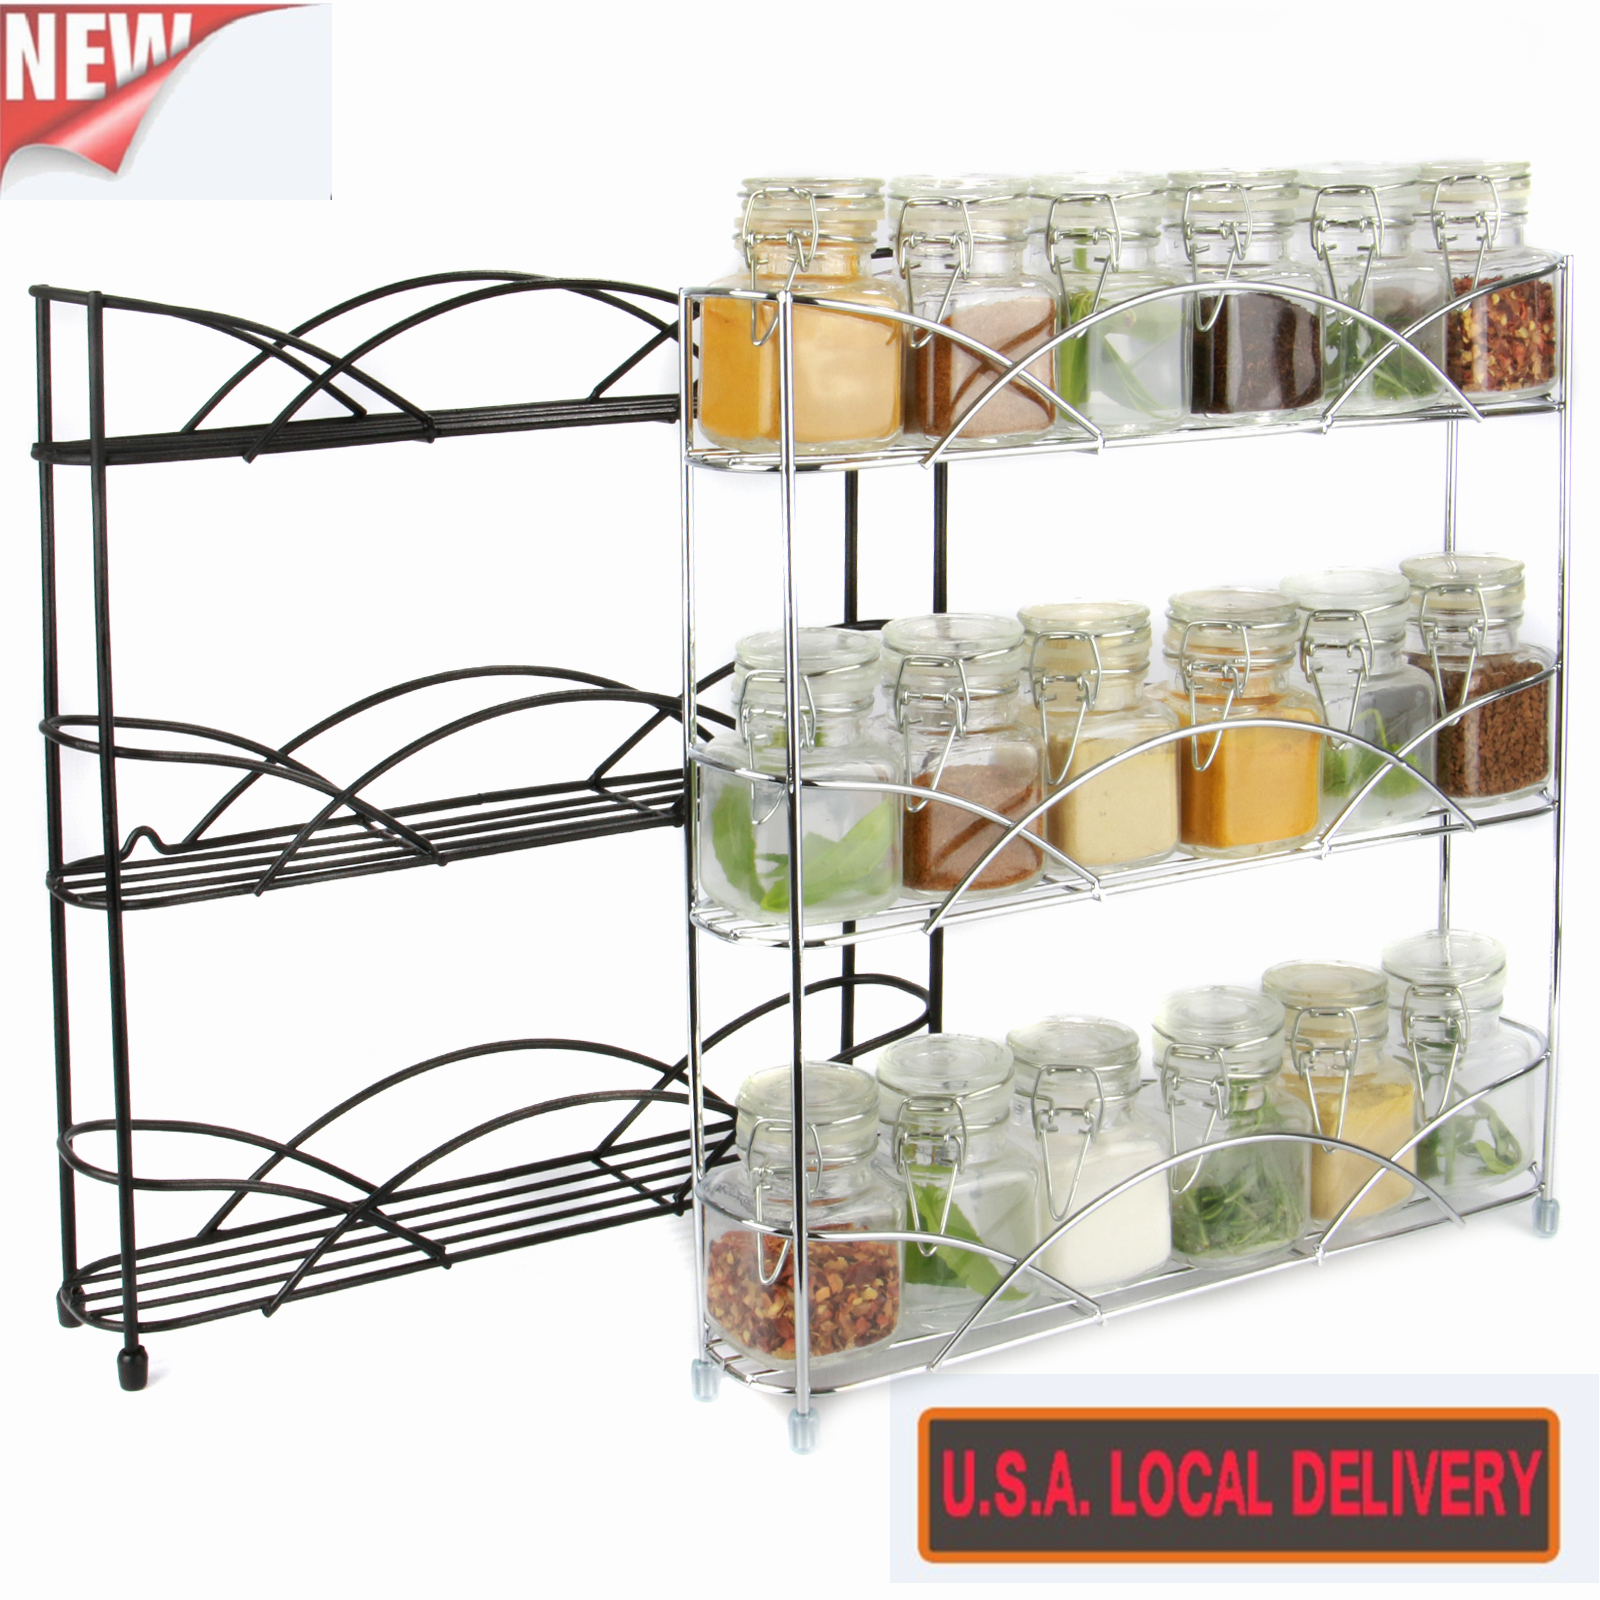 Wall Cabinet Spice Rack: Kitchen Wire Spice Rack